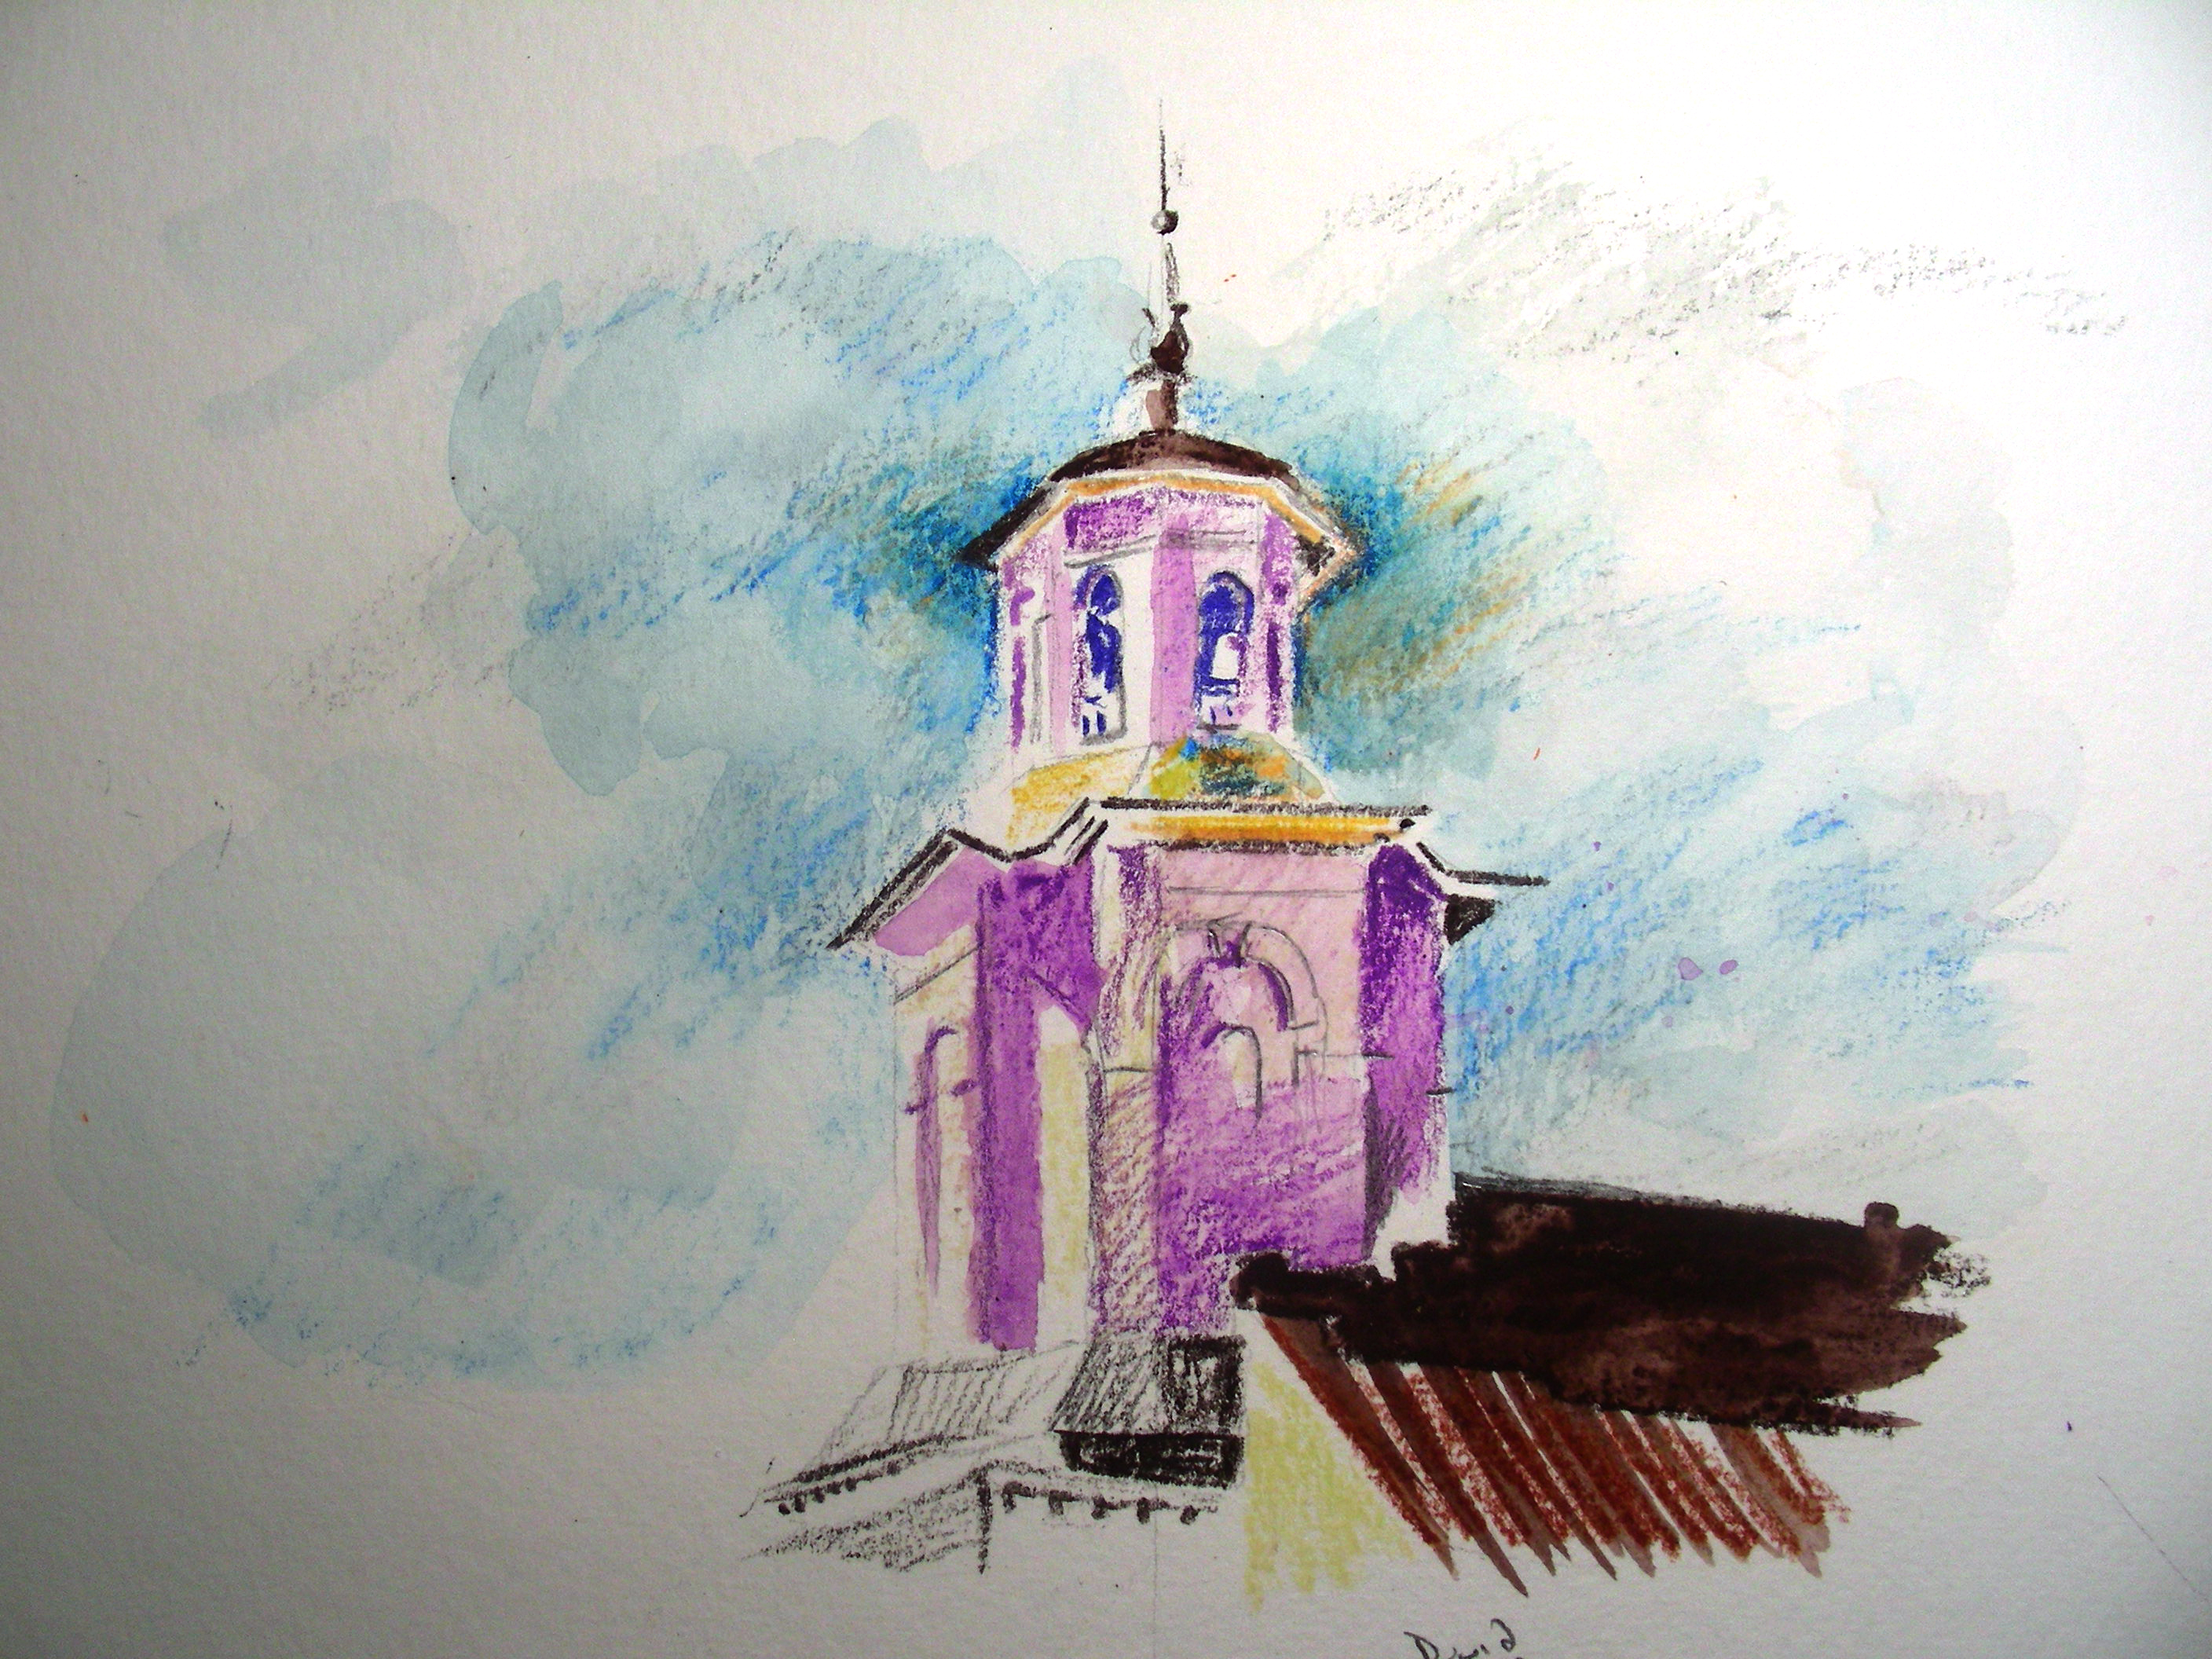 2nd watercolor pencil sketch of church tower methodist church tower 2